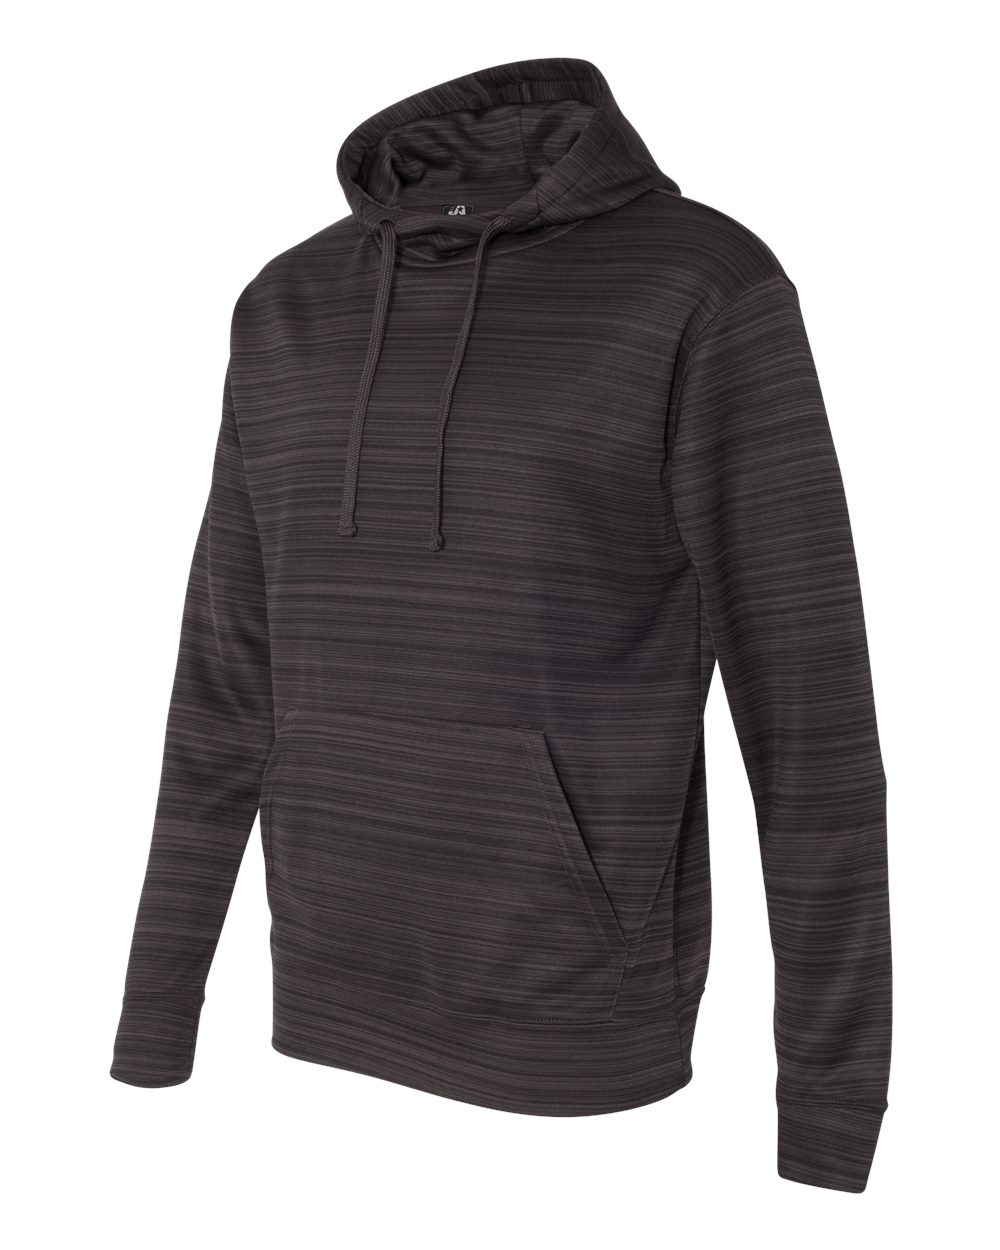 J.America 8661 - Odyssey Striped Performance Fleece Hooded Pullover Sweatshirt